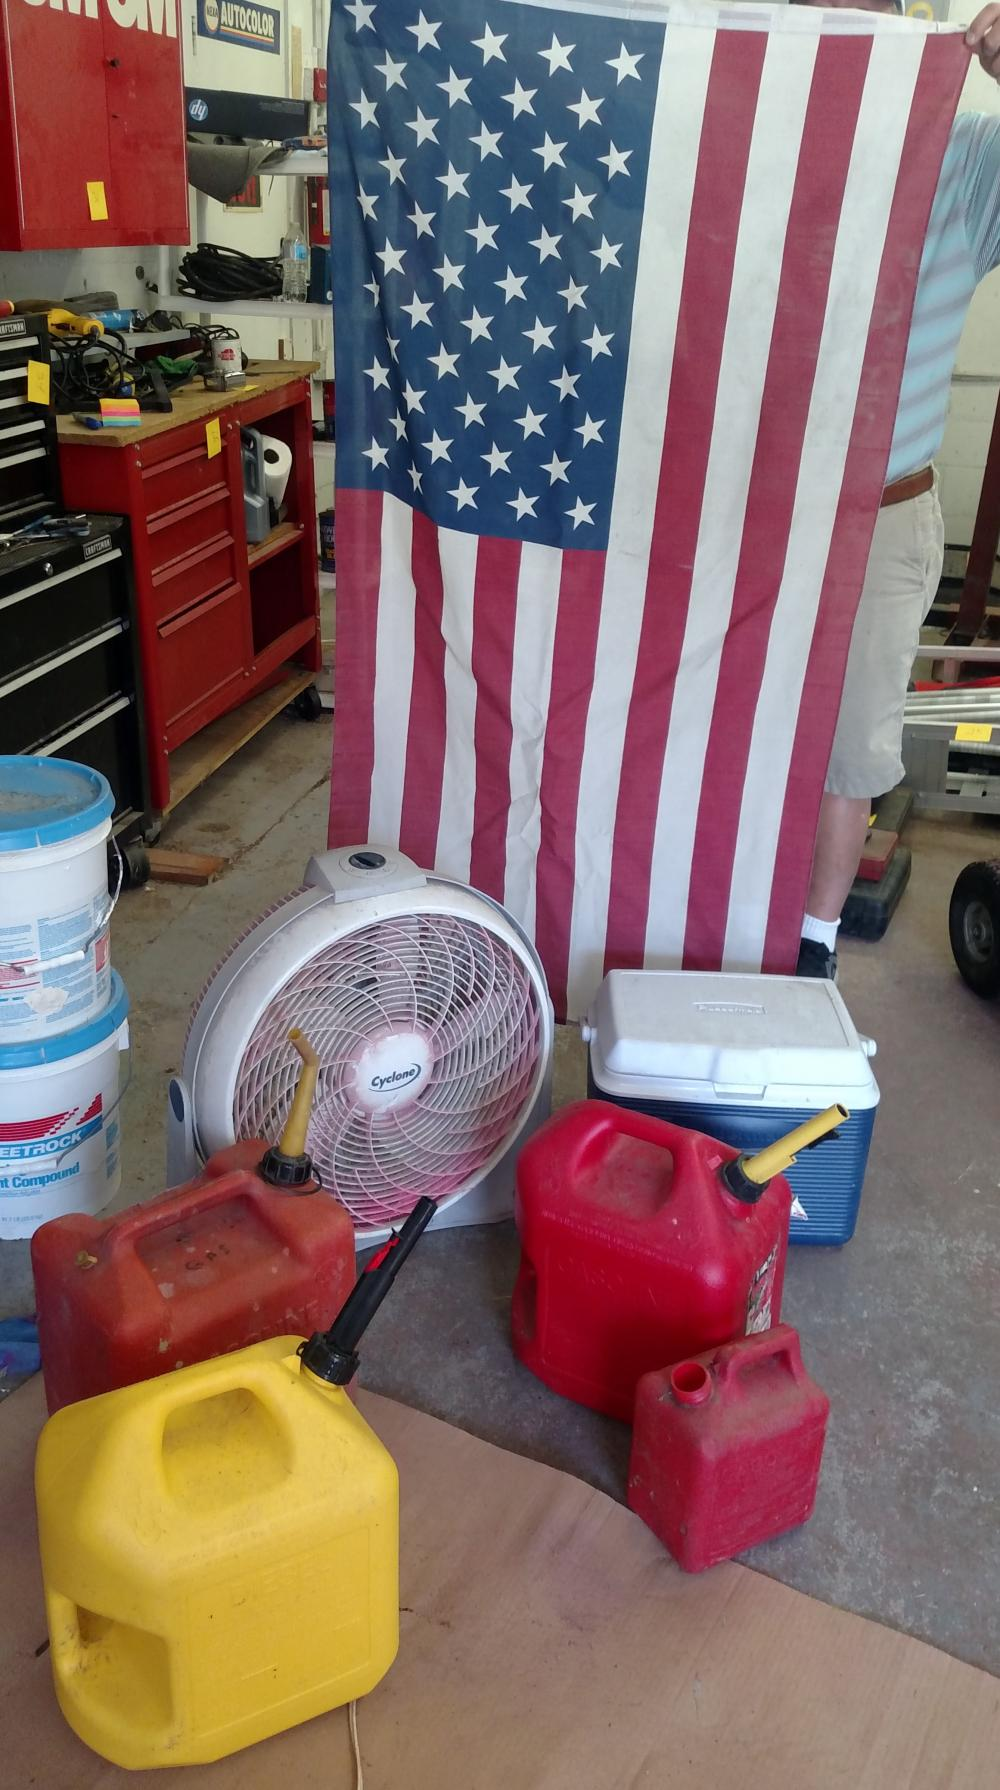 gas cans, fan, flag, cooler